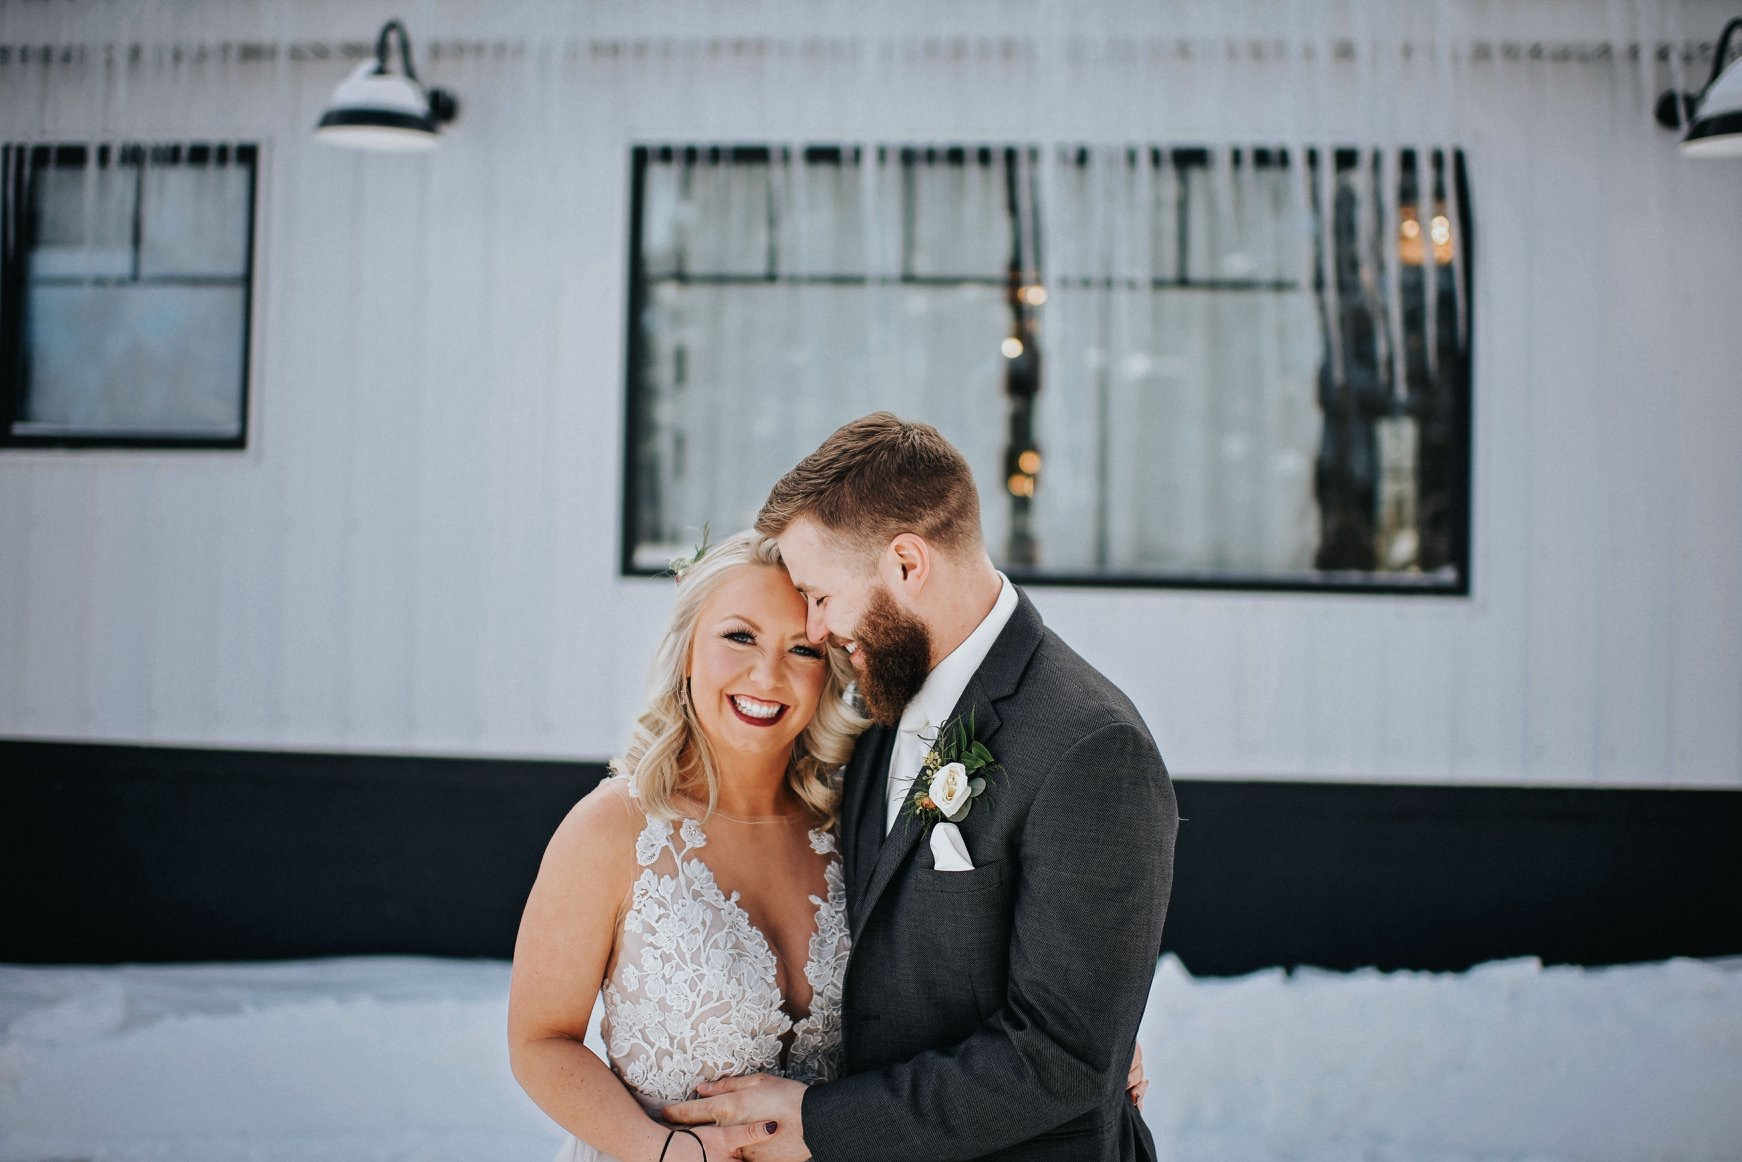 Taylor & Erika - Fox & Eve Photography